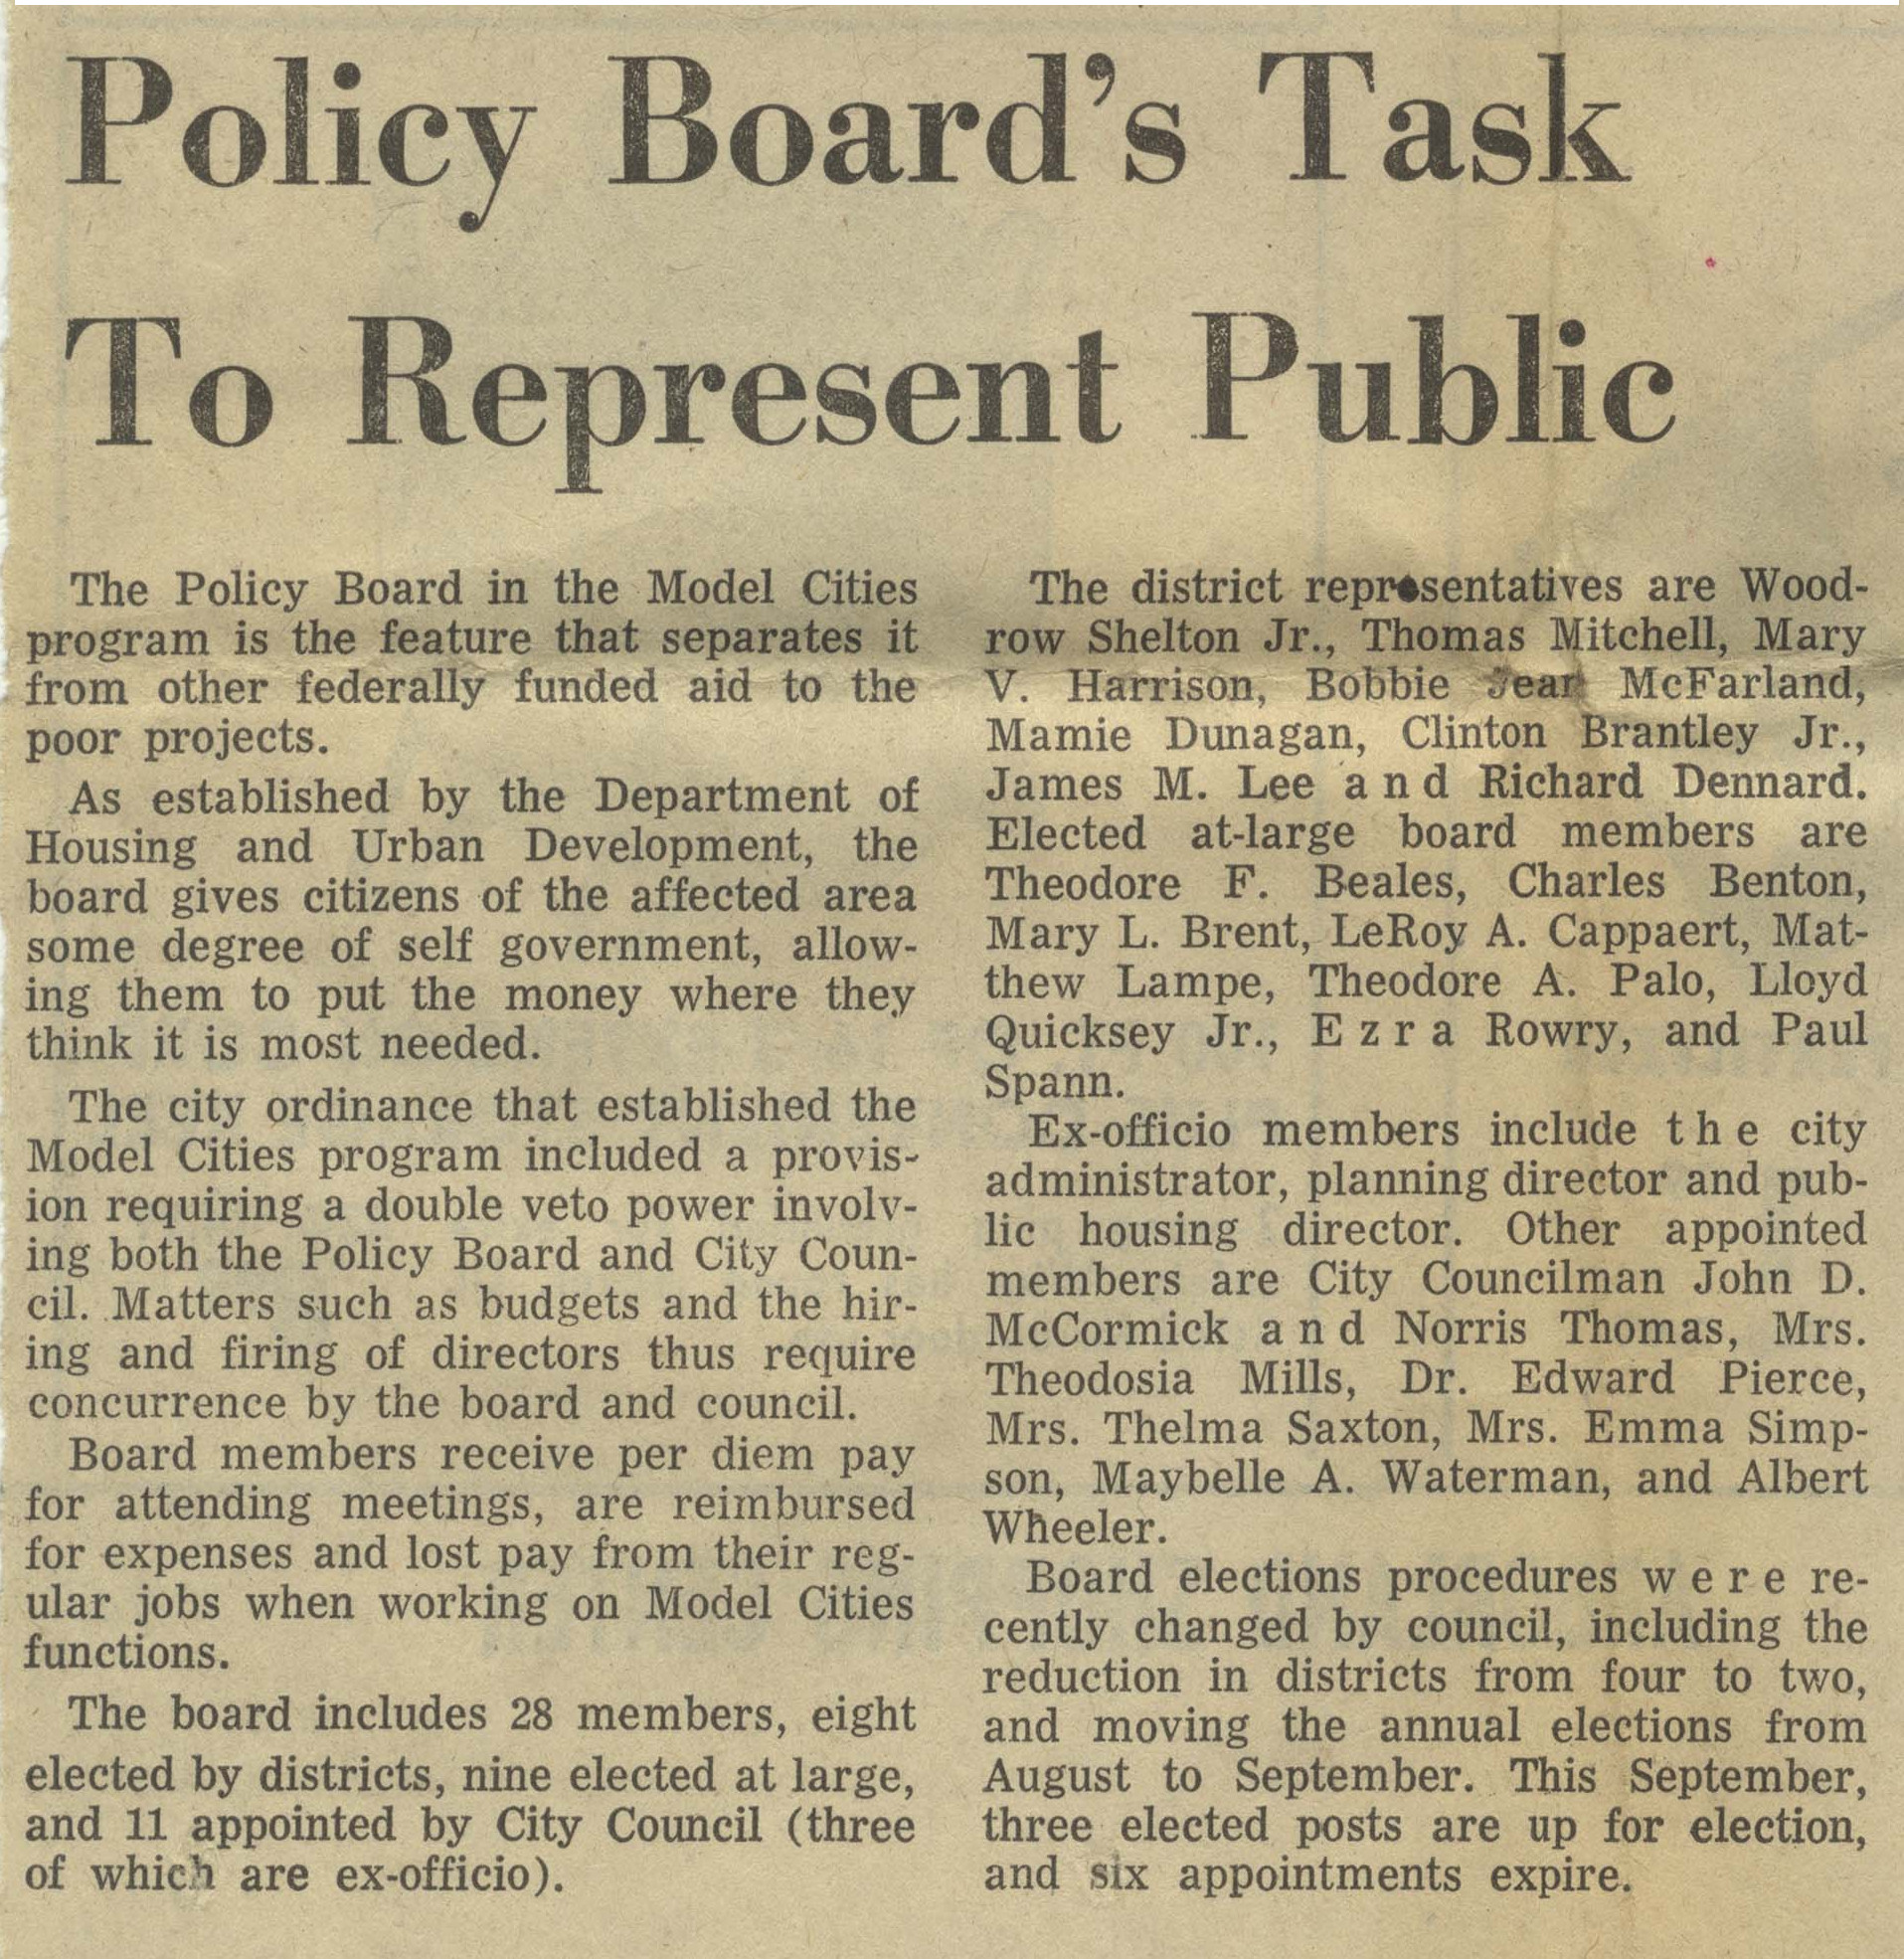 Policy Board's Task To Represent Public image